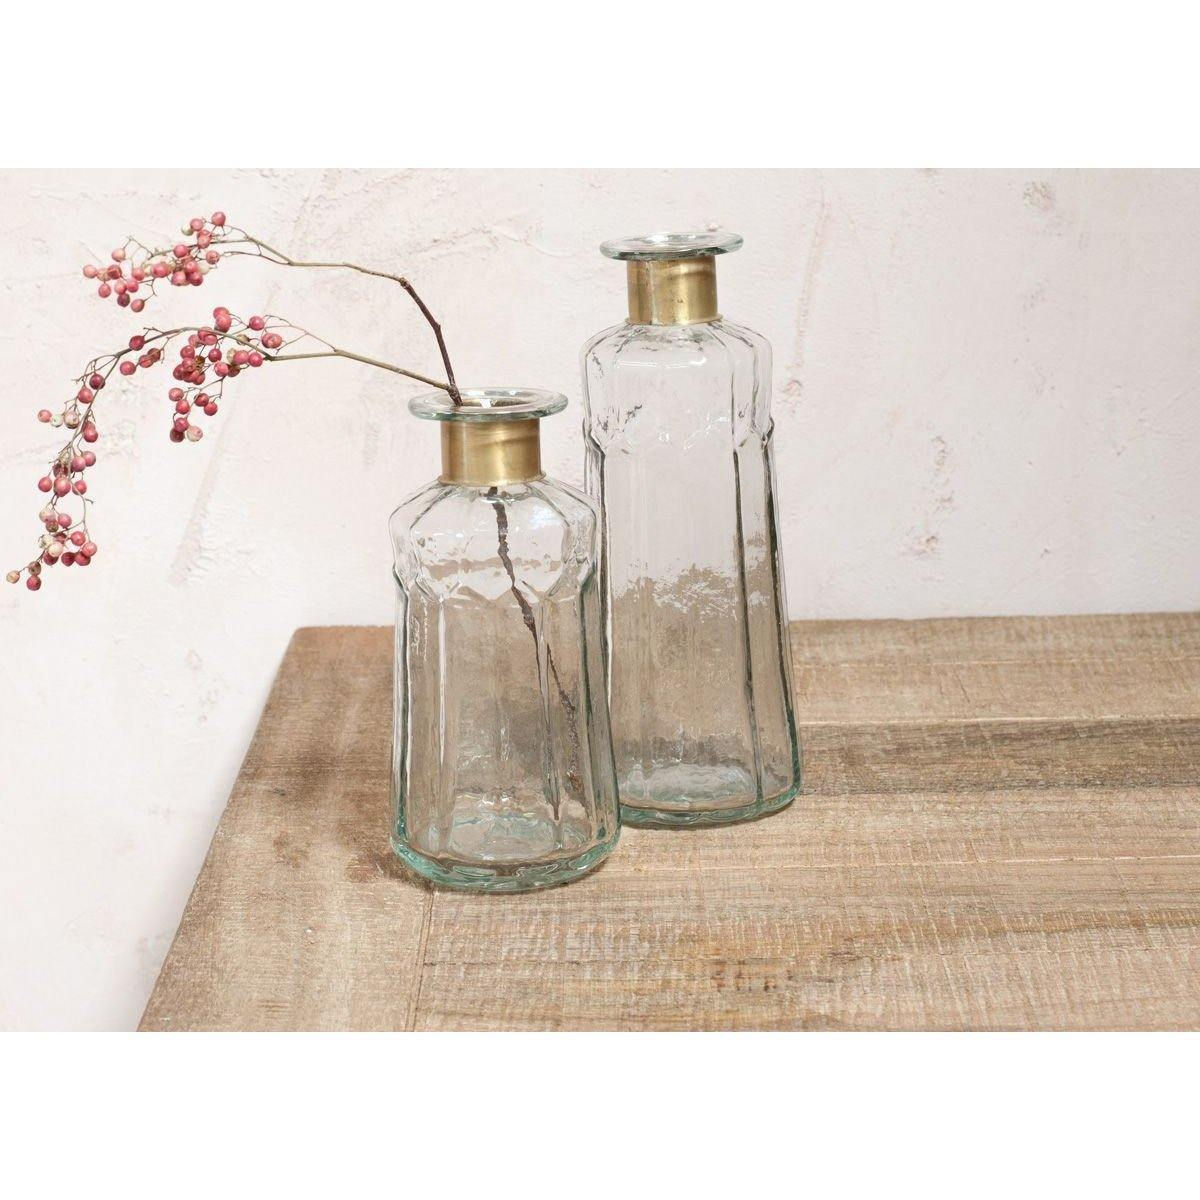 Chara Hammered Bottle - Decorative